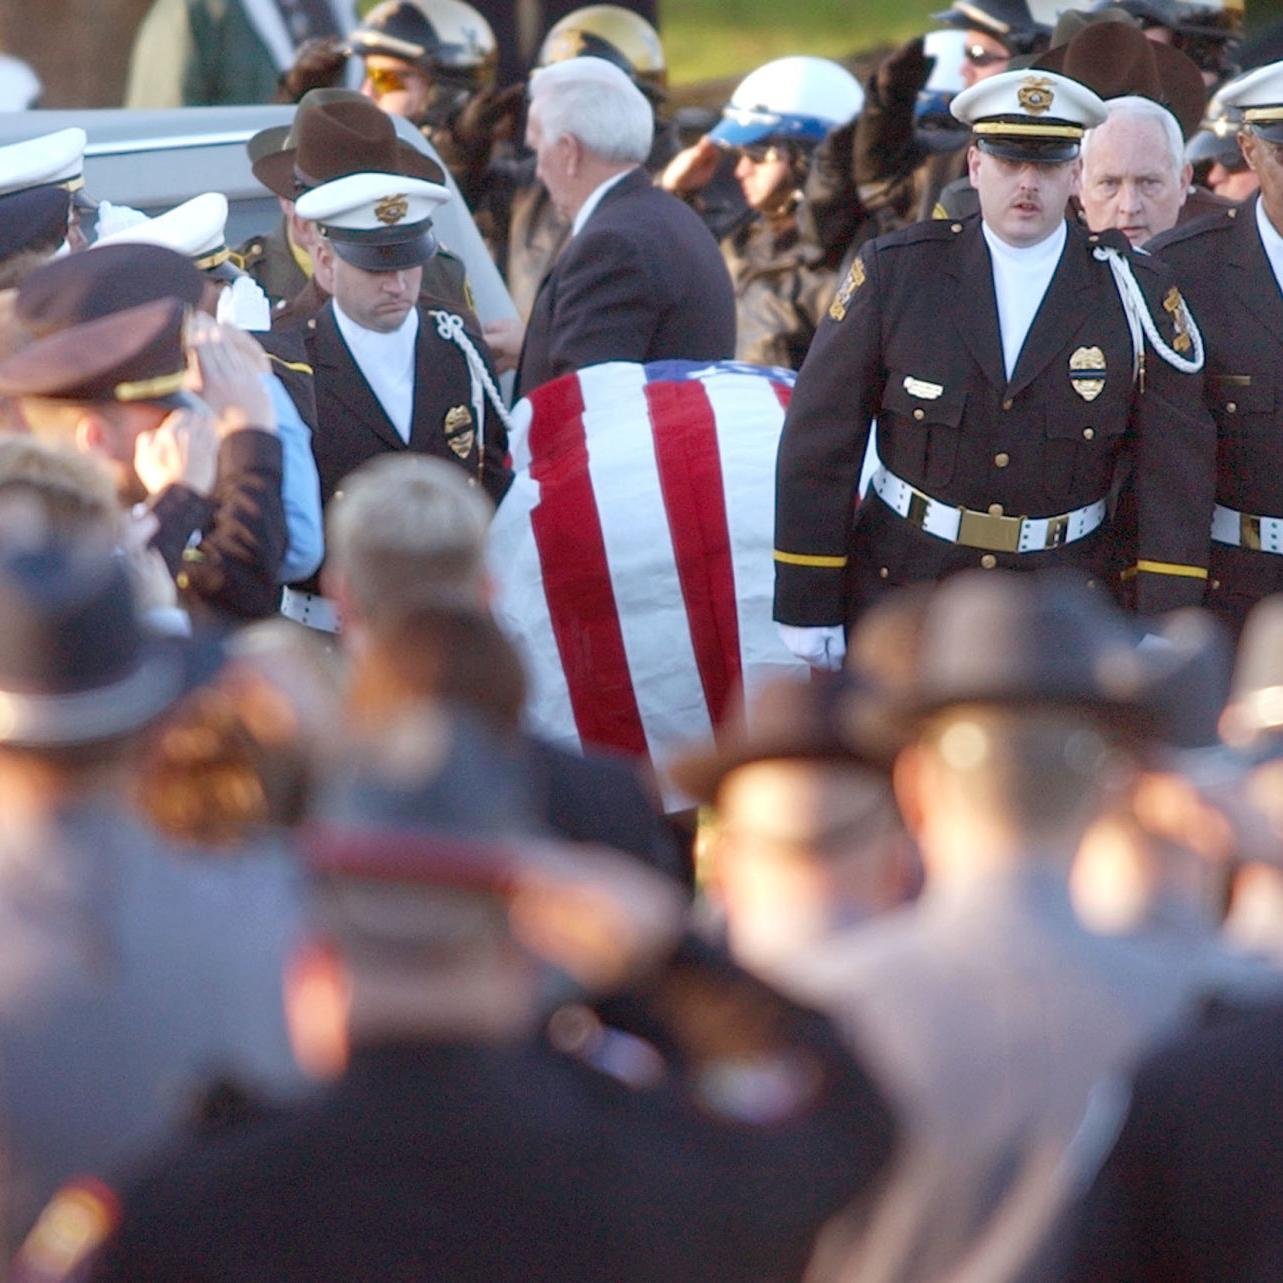 More than 100 officers from region have died in line of duty